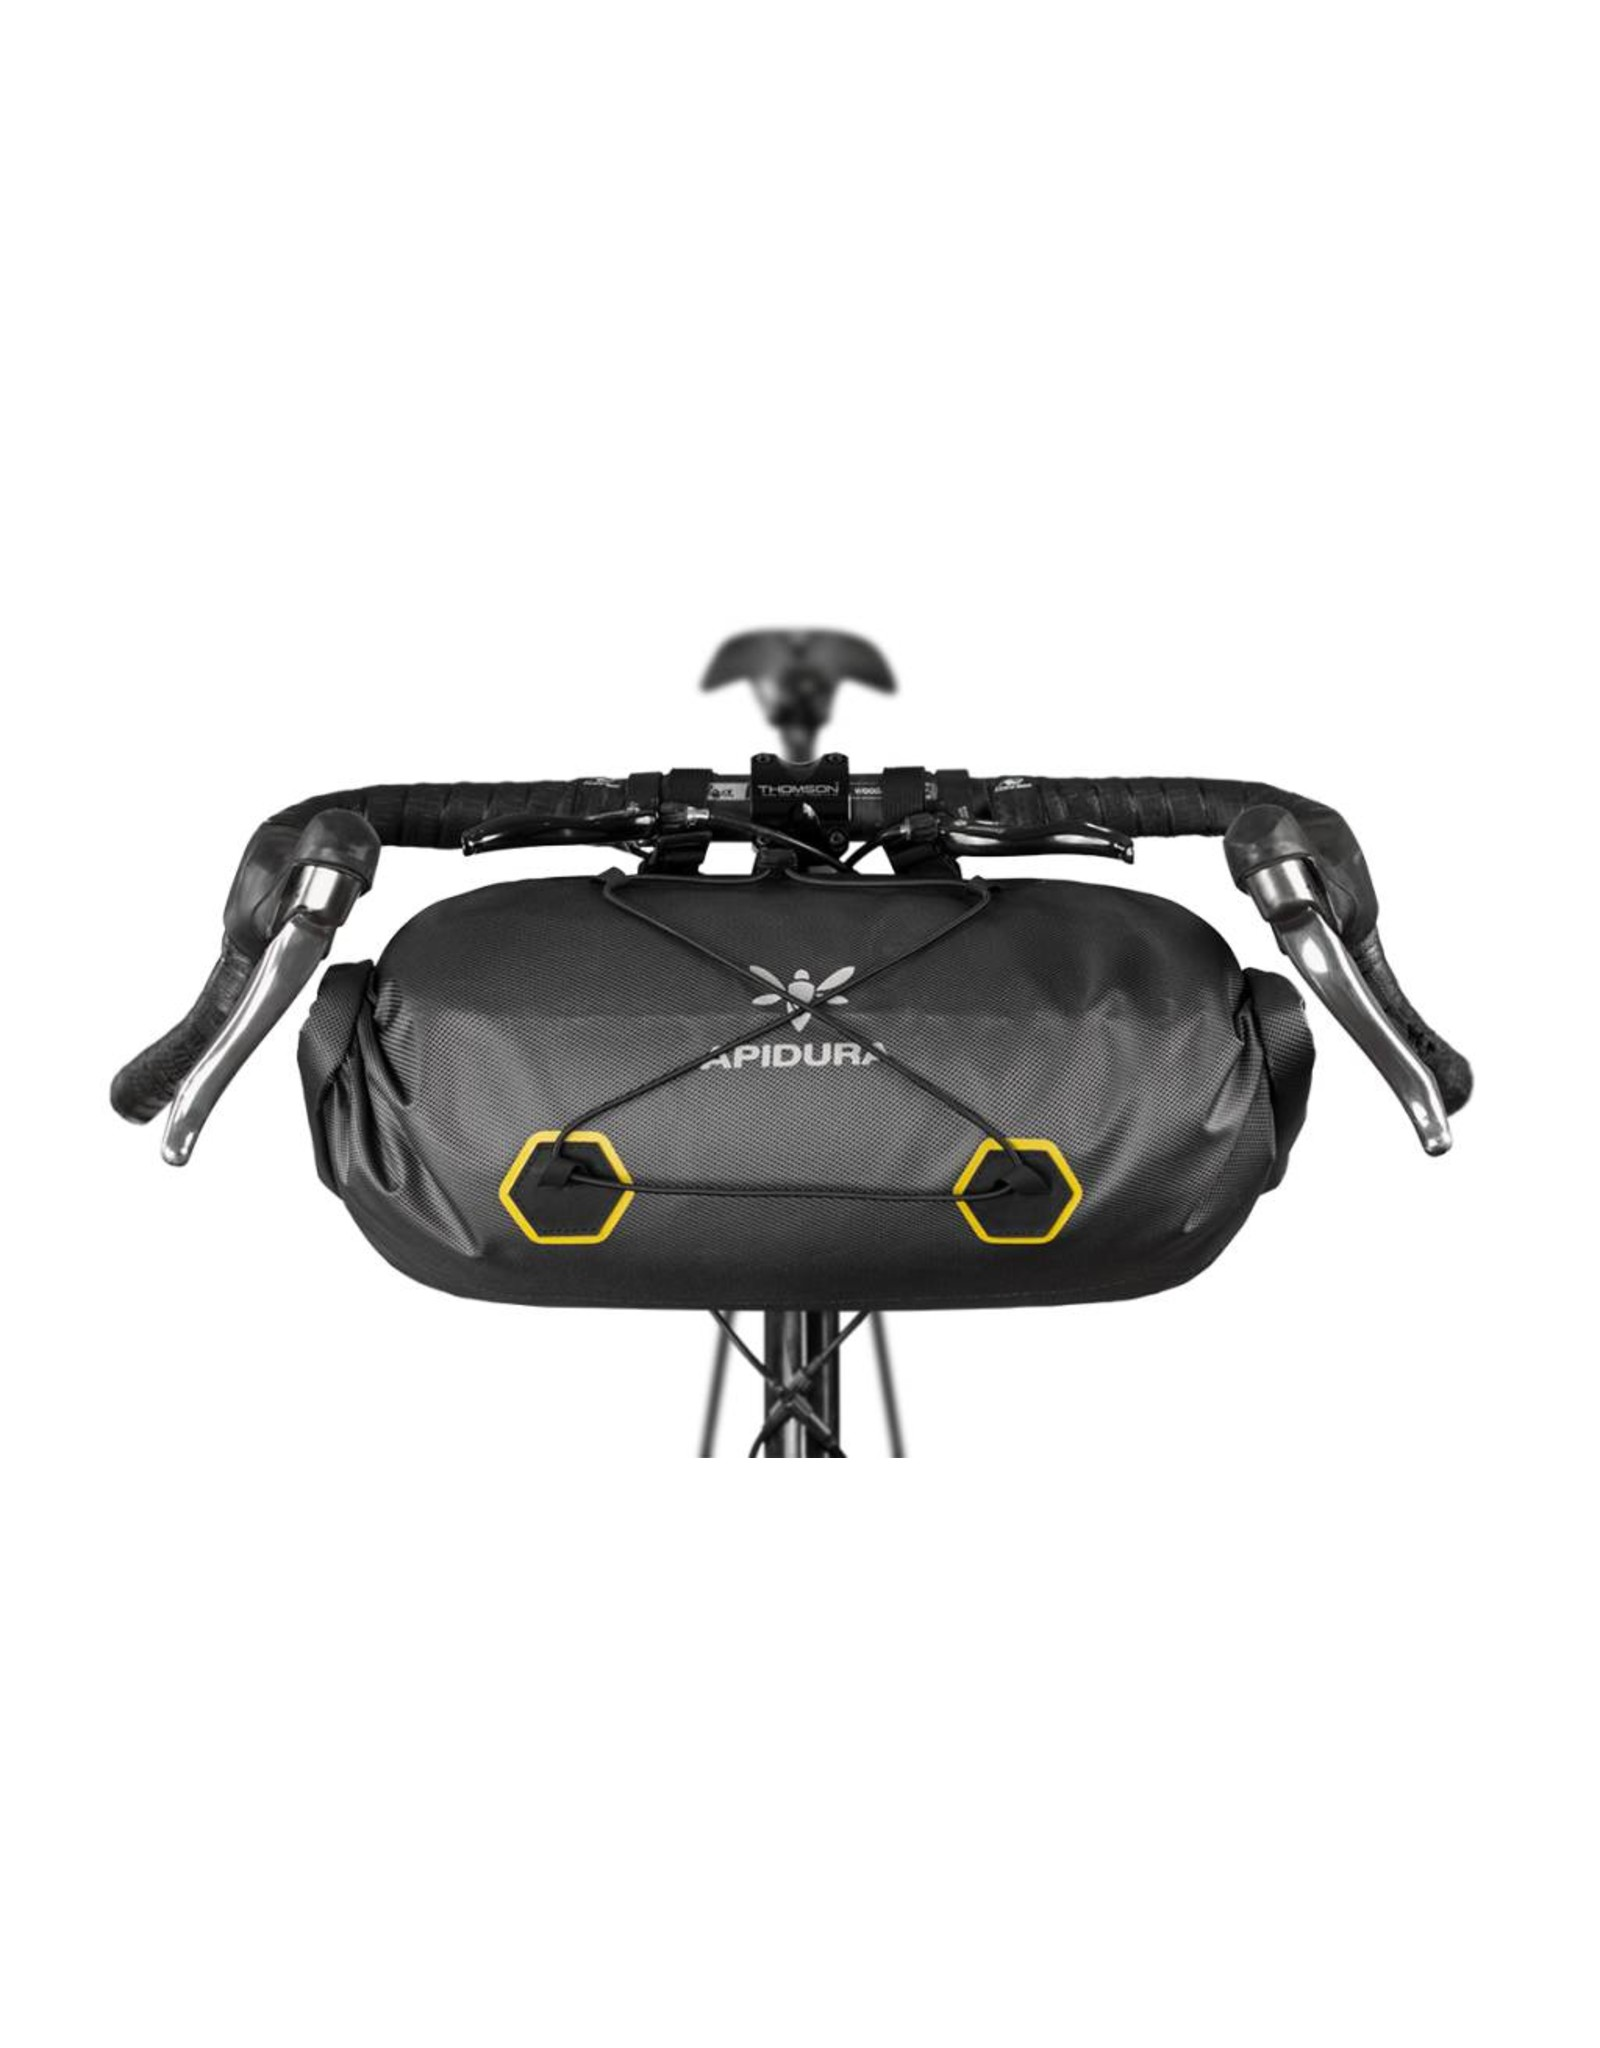 Apidura Apidura Front DRY Handlebar Pack, Mid-size 14 litre (touring/bikepacking/randonneur/commuter bag)